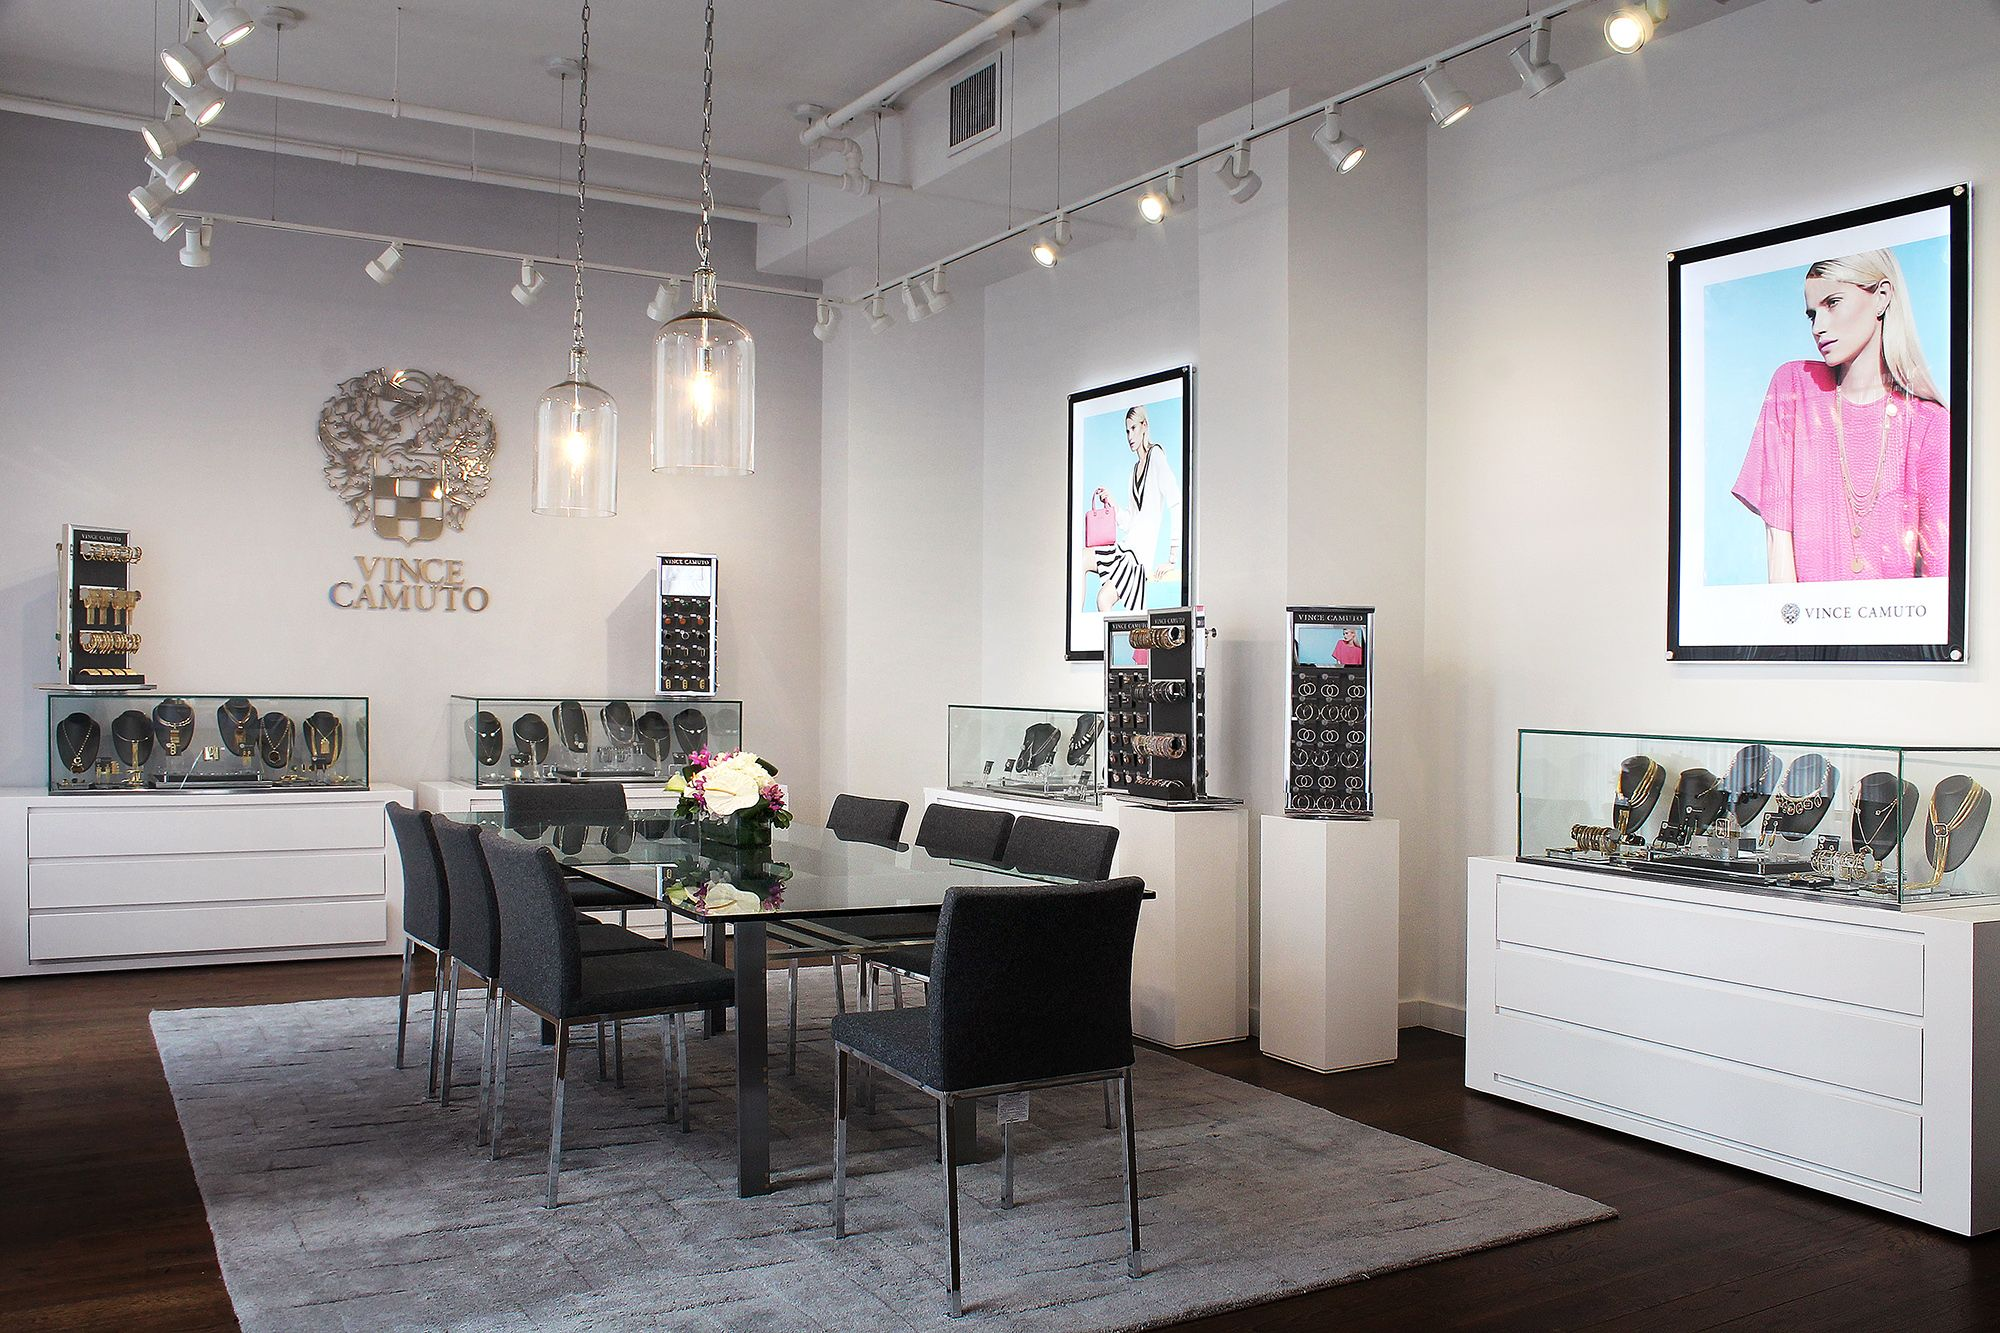 Image Result For Vince Camuto Showroom 1370 New York Home Decor Home Decor